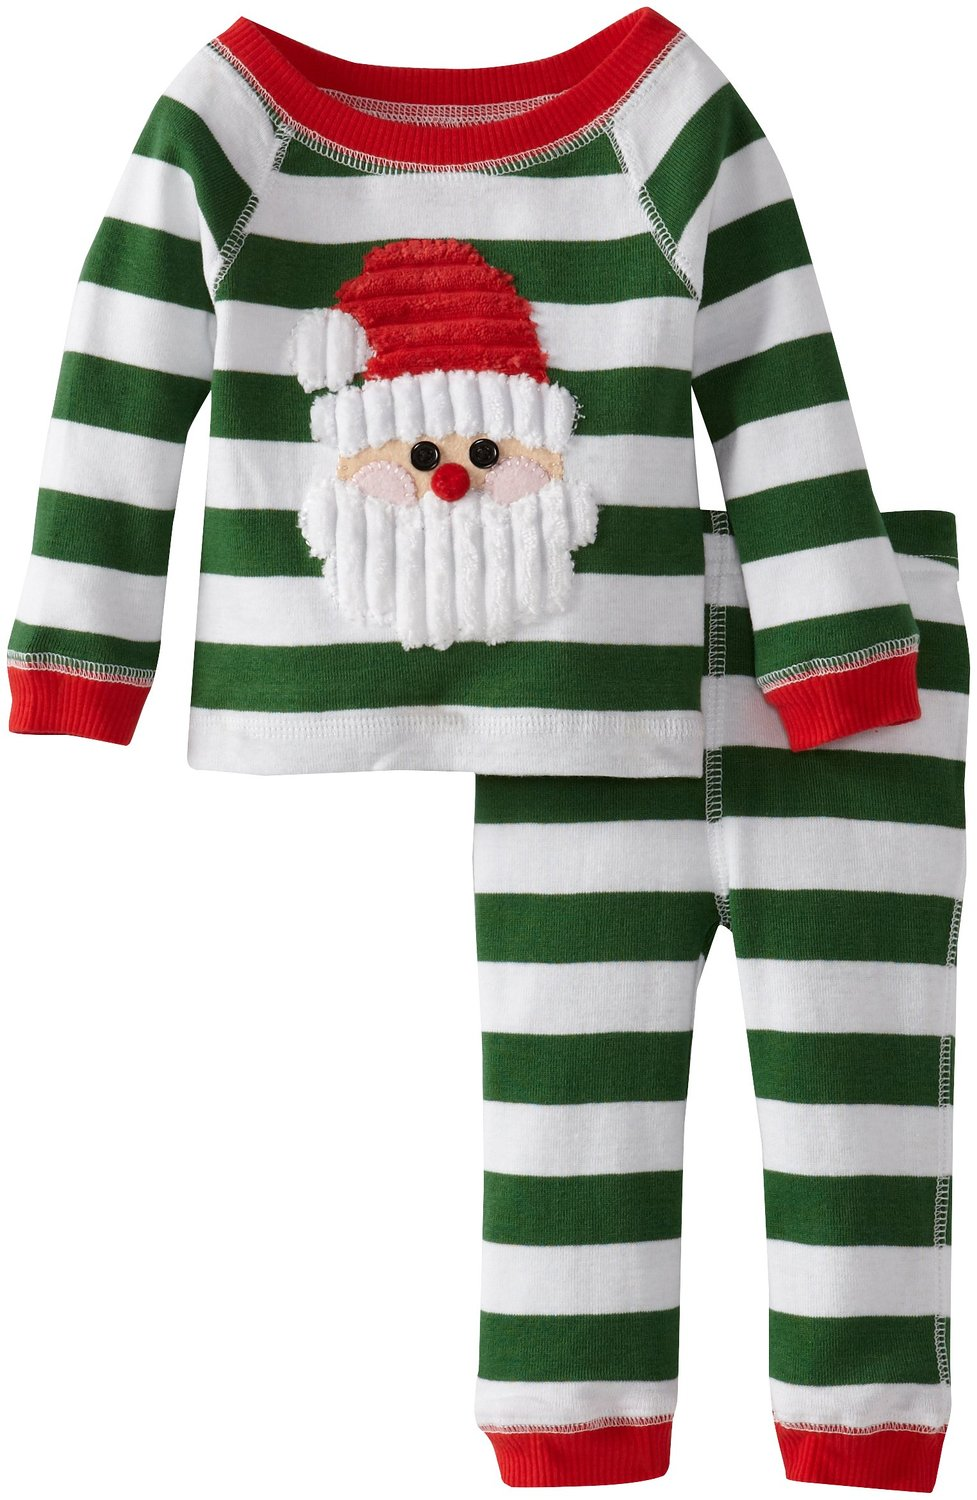 Kids Christmas Pajamas.Green Stripes Santa Lounge Set Mud Pie Infant Or Toddler